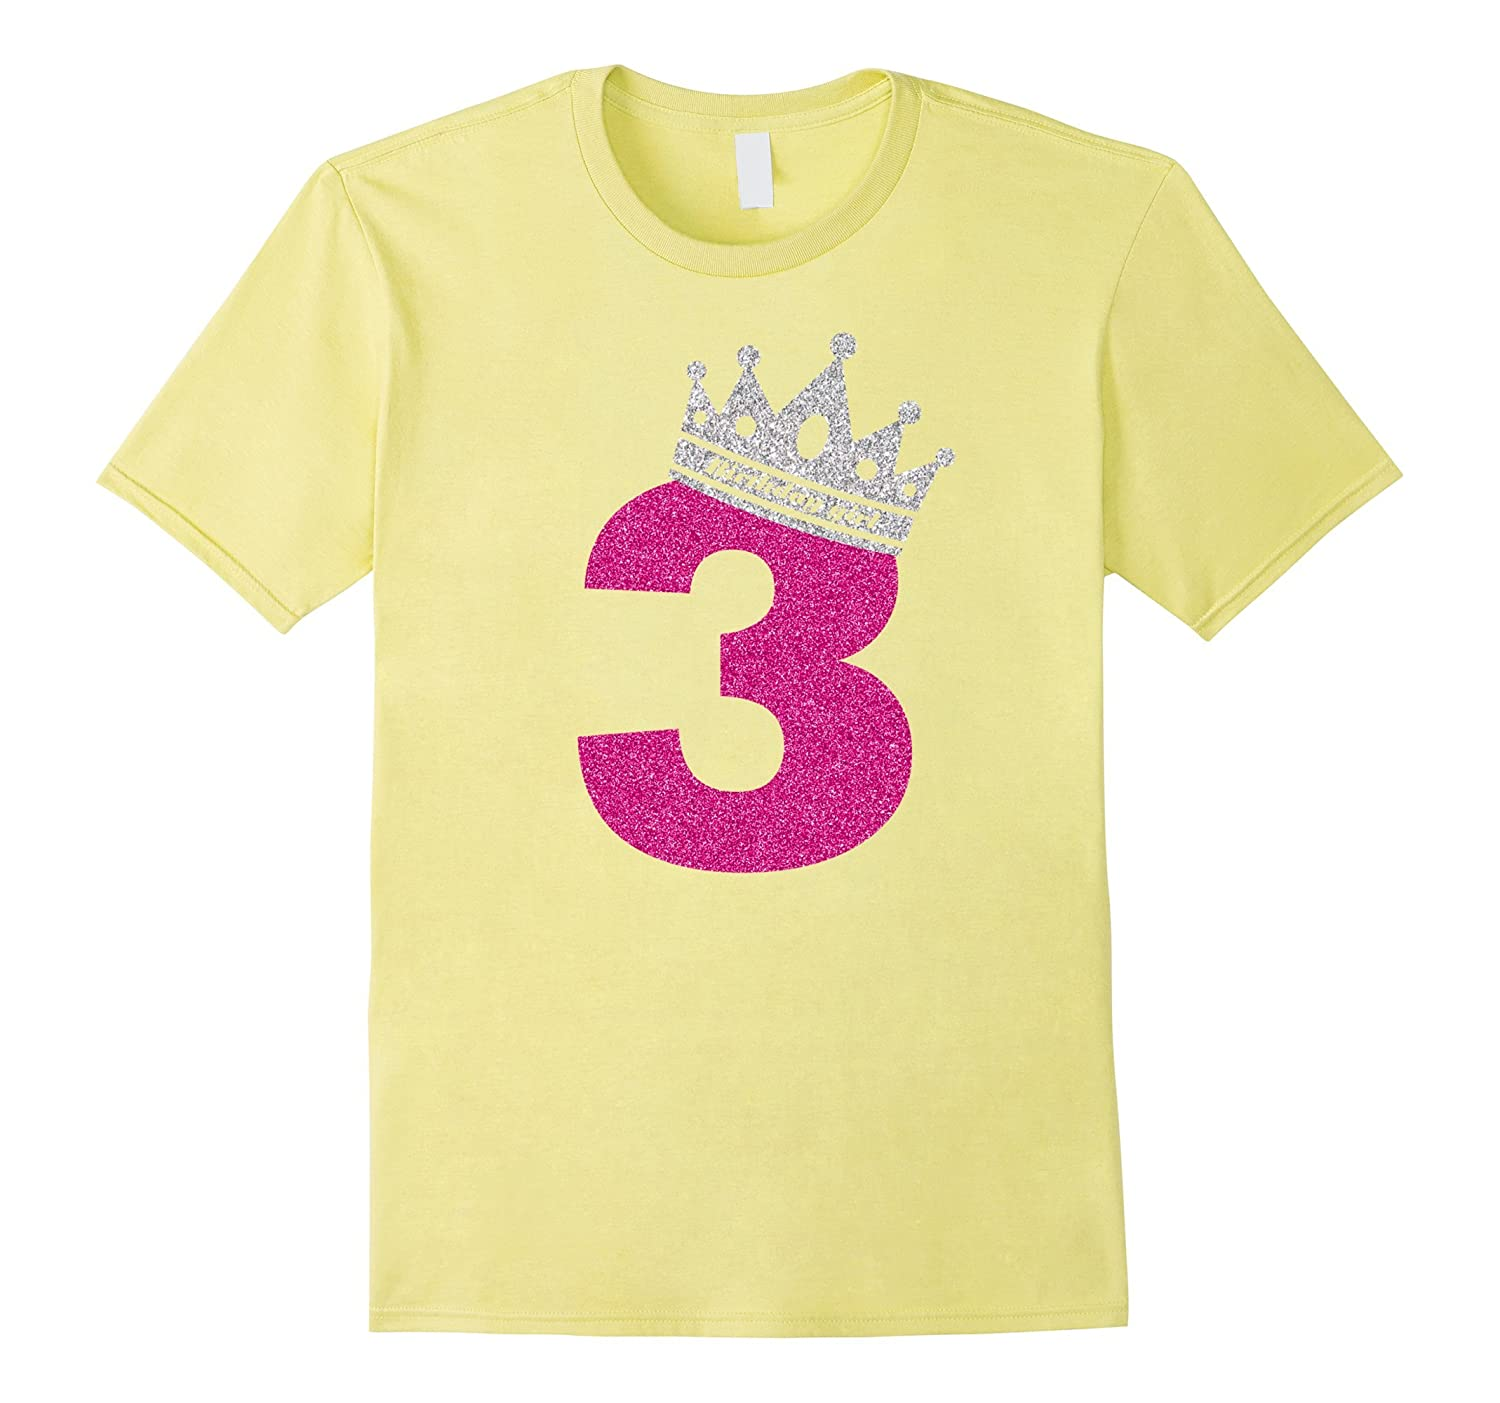 3rd Birthday Shirt Girl Princess